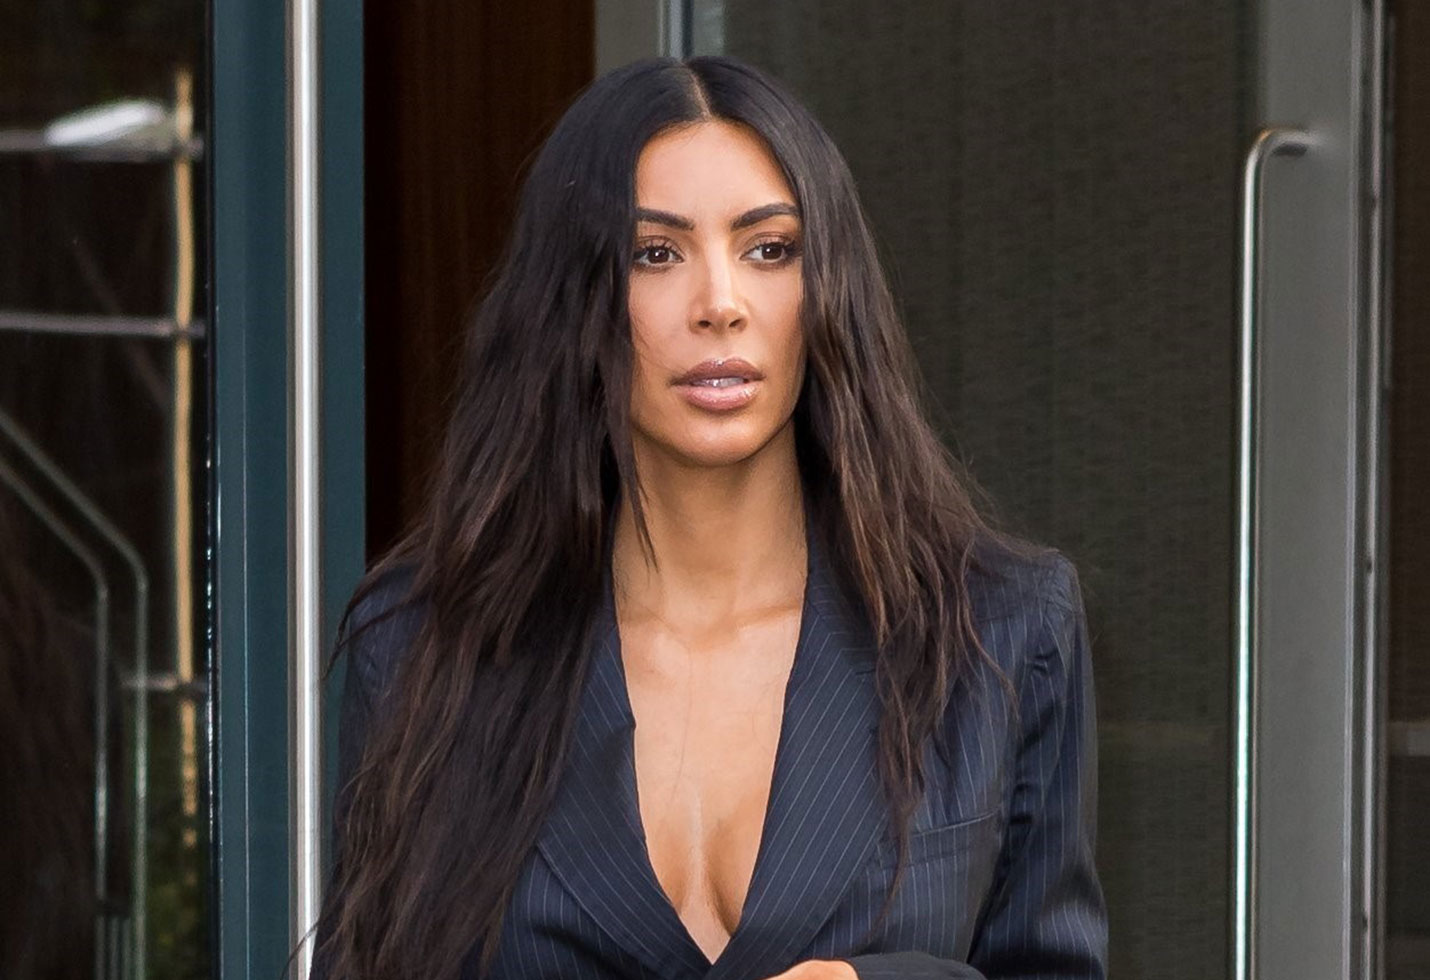 Kim kardashian claims bikini cellulite photo photoshopped